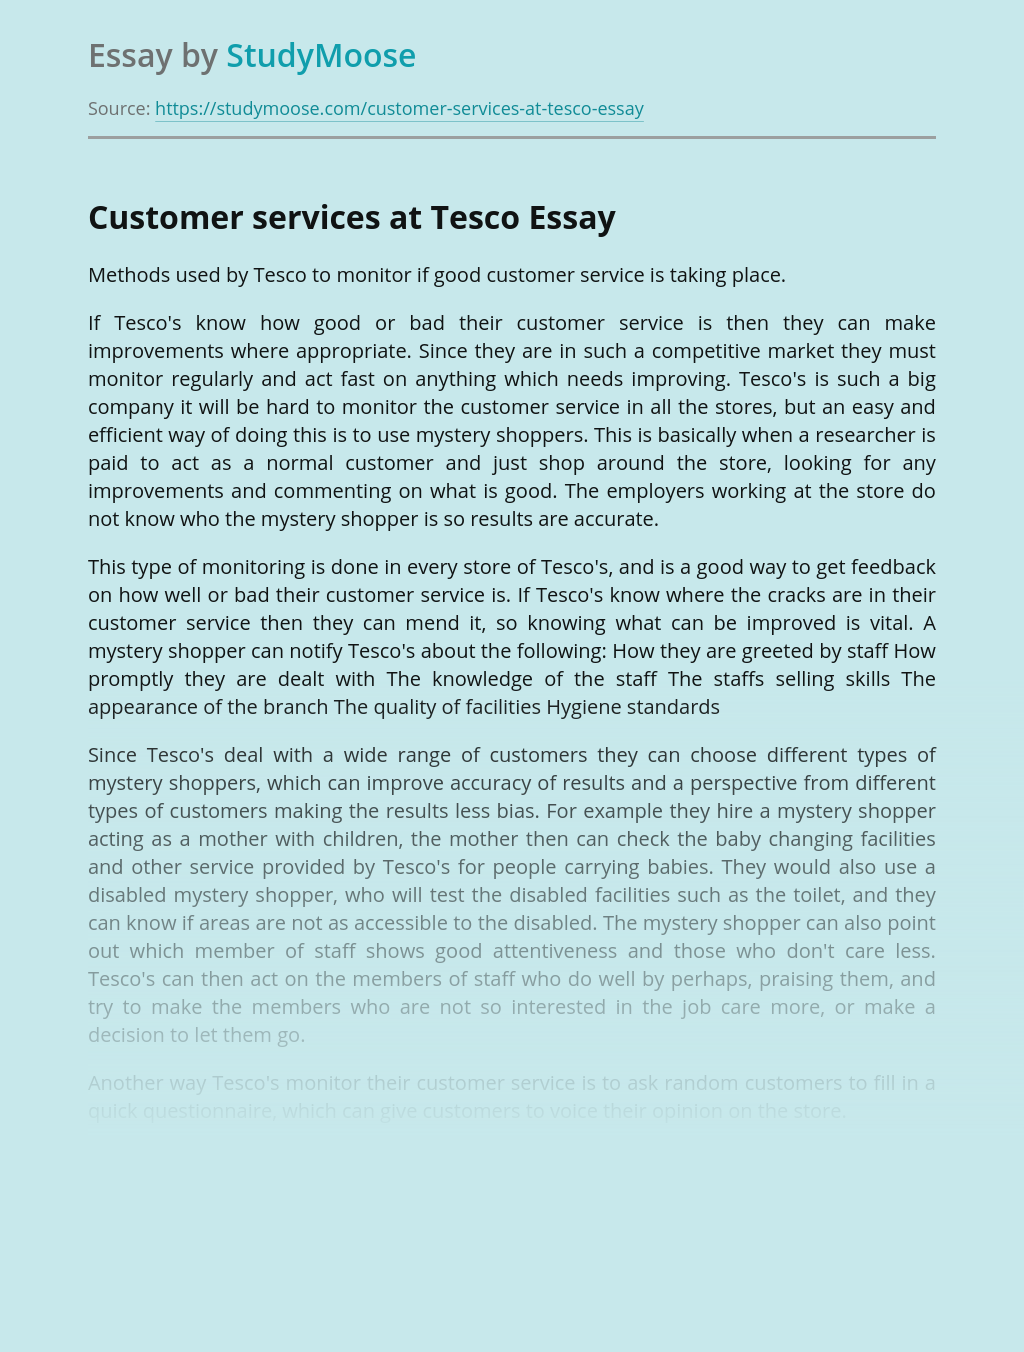 Customer services at Tesco